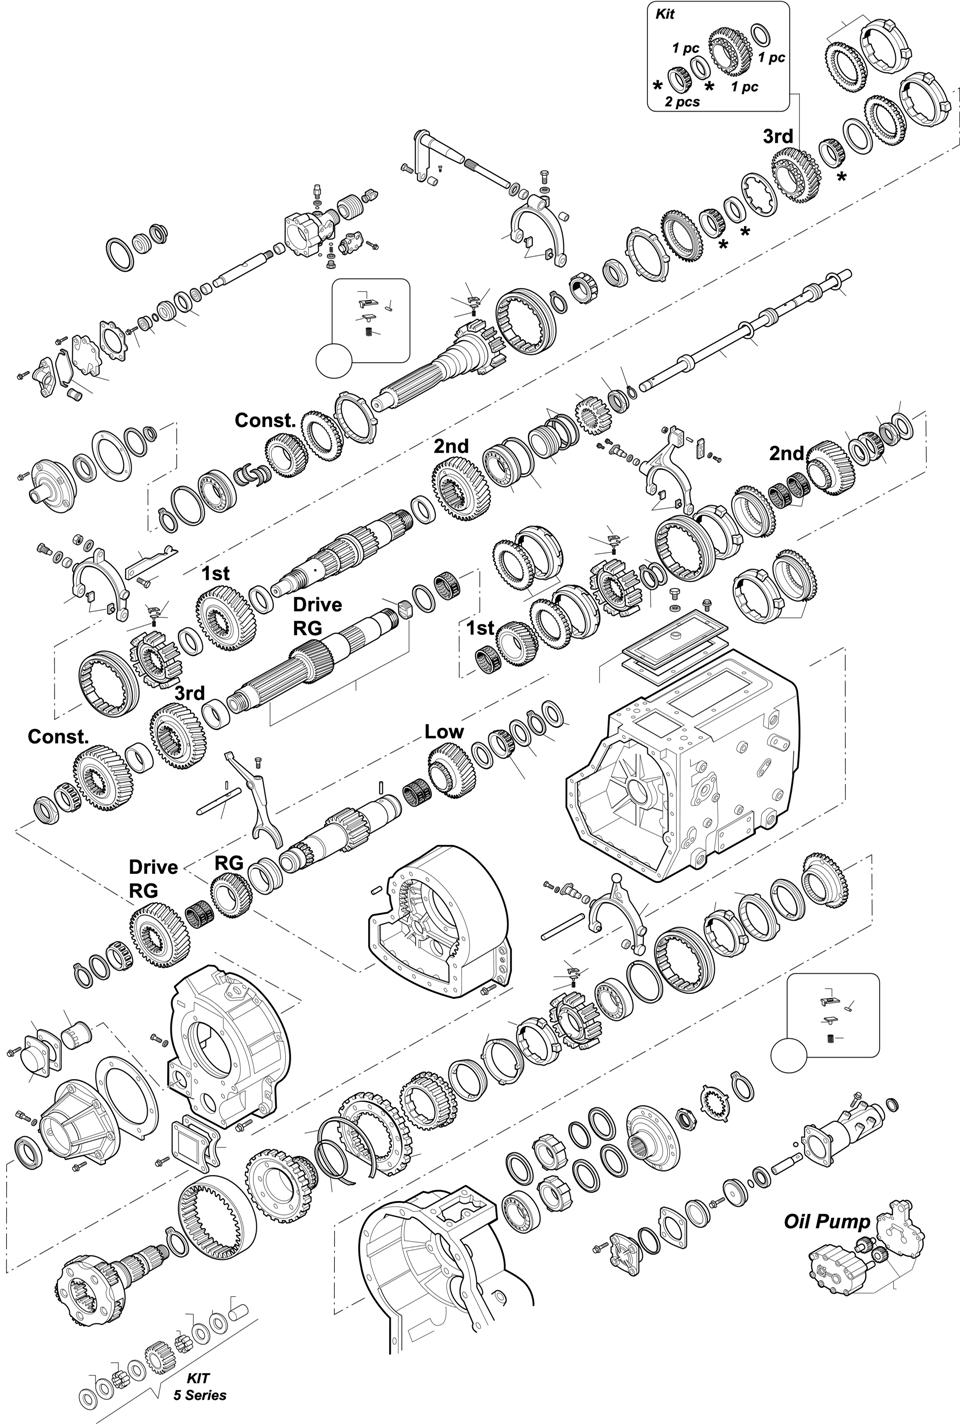 GEARBOXES: SR2000 F16 - FH16